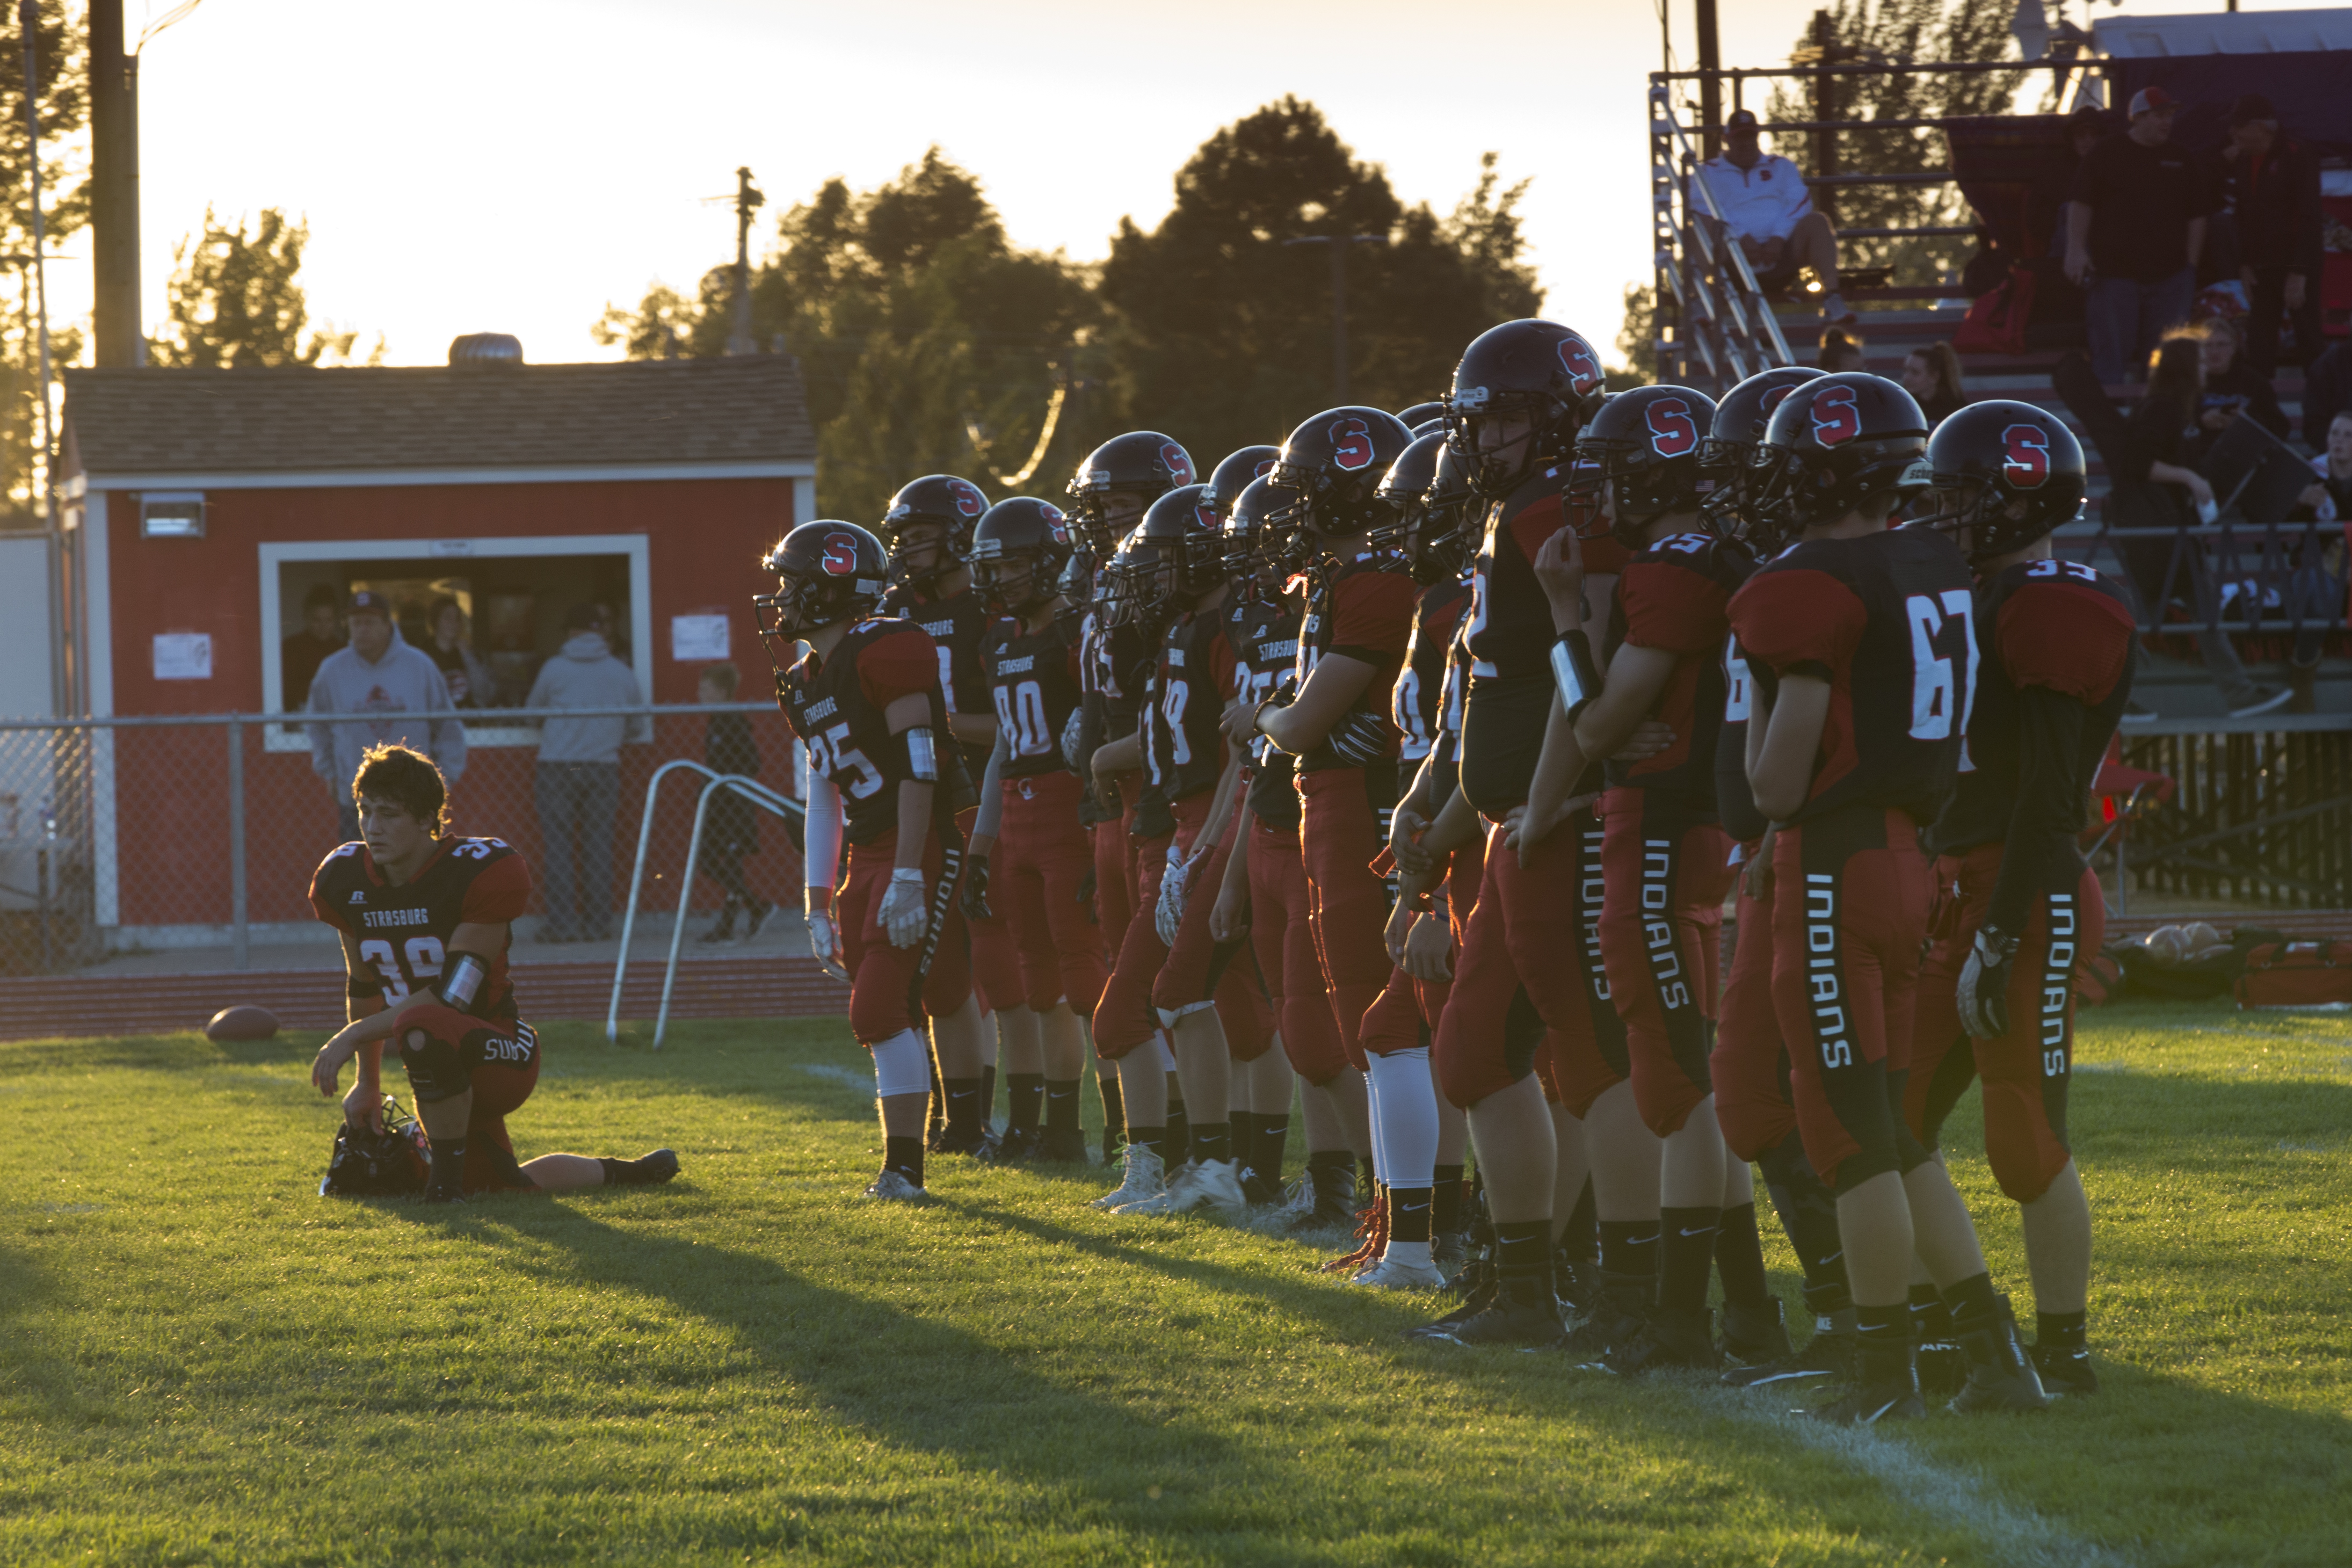 """Members of the Strasburg High School Indians football team line up for warmups Friday Sept. 21 2018 ahead of their home game against Limon. Work began on the first schoolhouse in the area in 1886. <a href=""""http://www.ssd31j.org/Content/SSD-History"""">The modern high school</a> on the northern side of downtown, built in 1976, serves <a href=""""https://www.publicschoolreview.com/strasburg-high-school-profile"""">315 students</a>."""